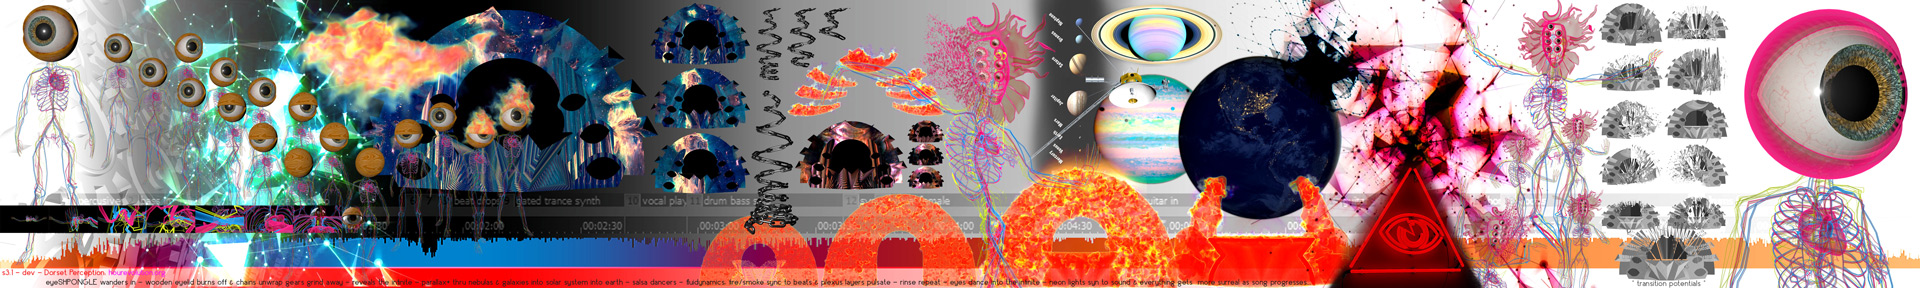 "Shpongle --- cinematic sketch by hourevolution for ""Dorset Perception"" 3d video-mapped mograph wonders"